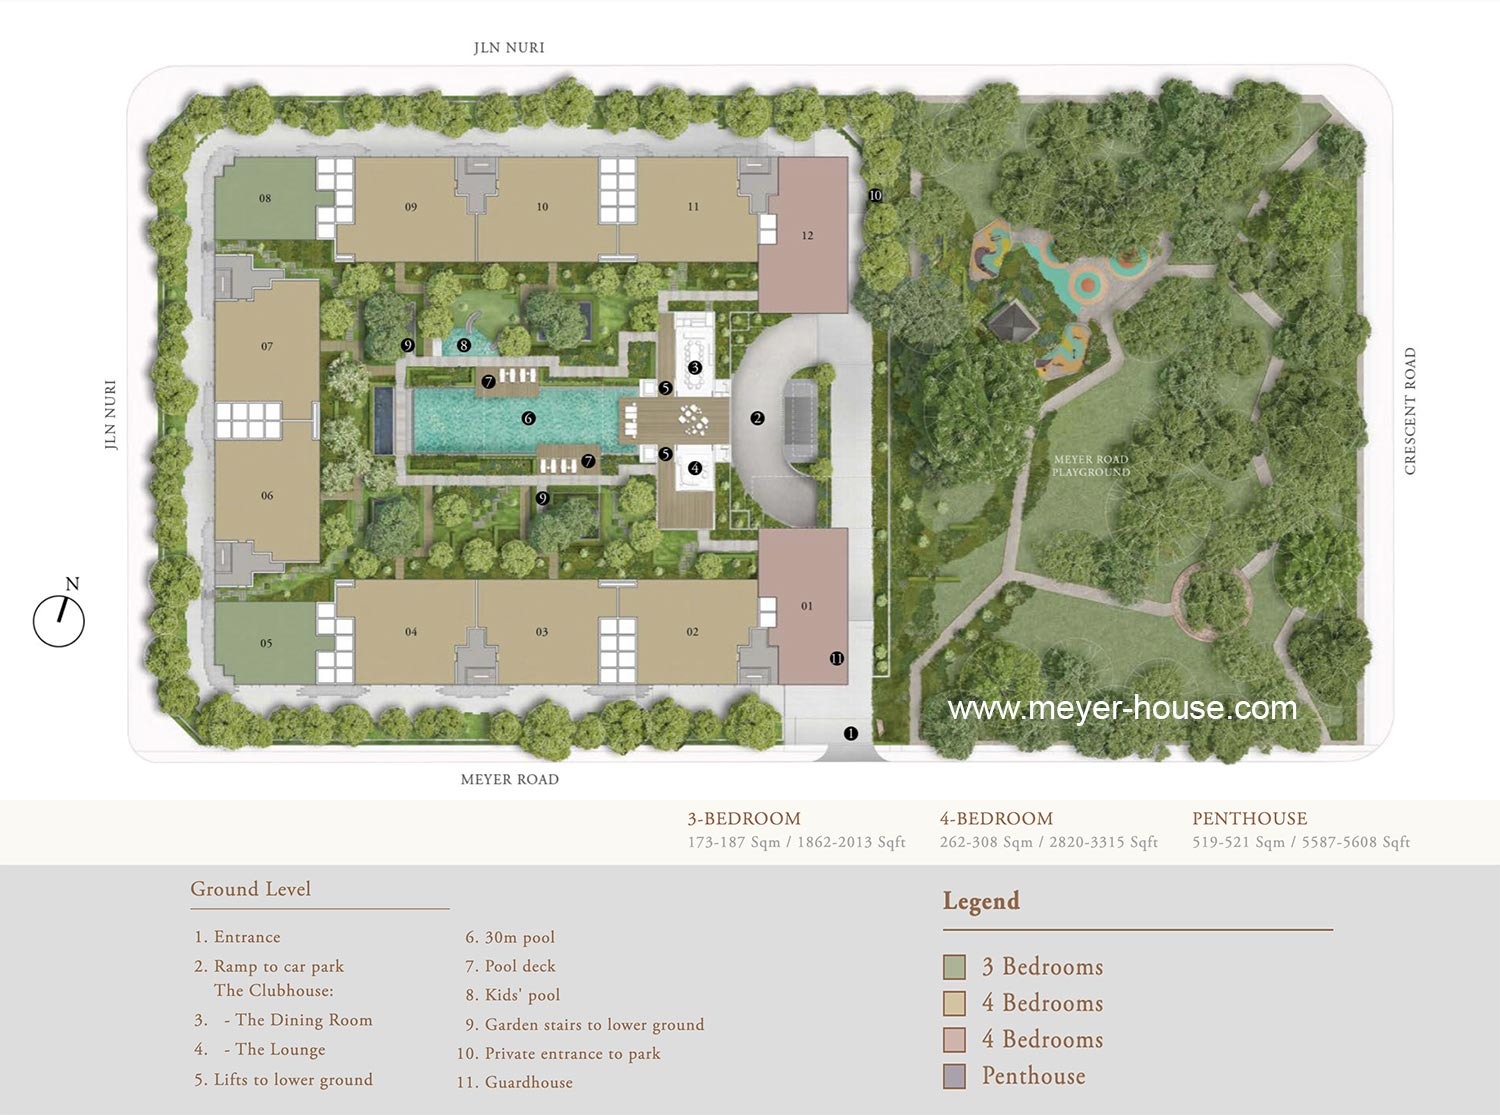 MeyerHouse Site Plan with legend